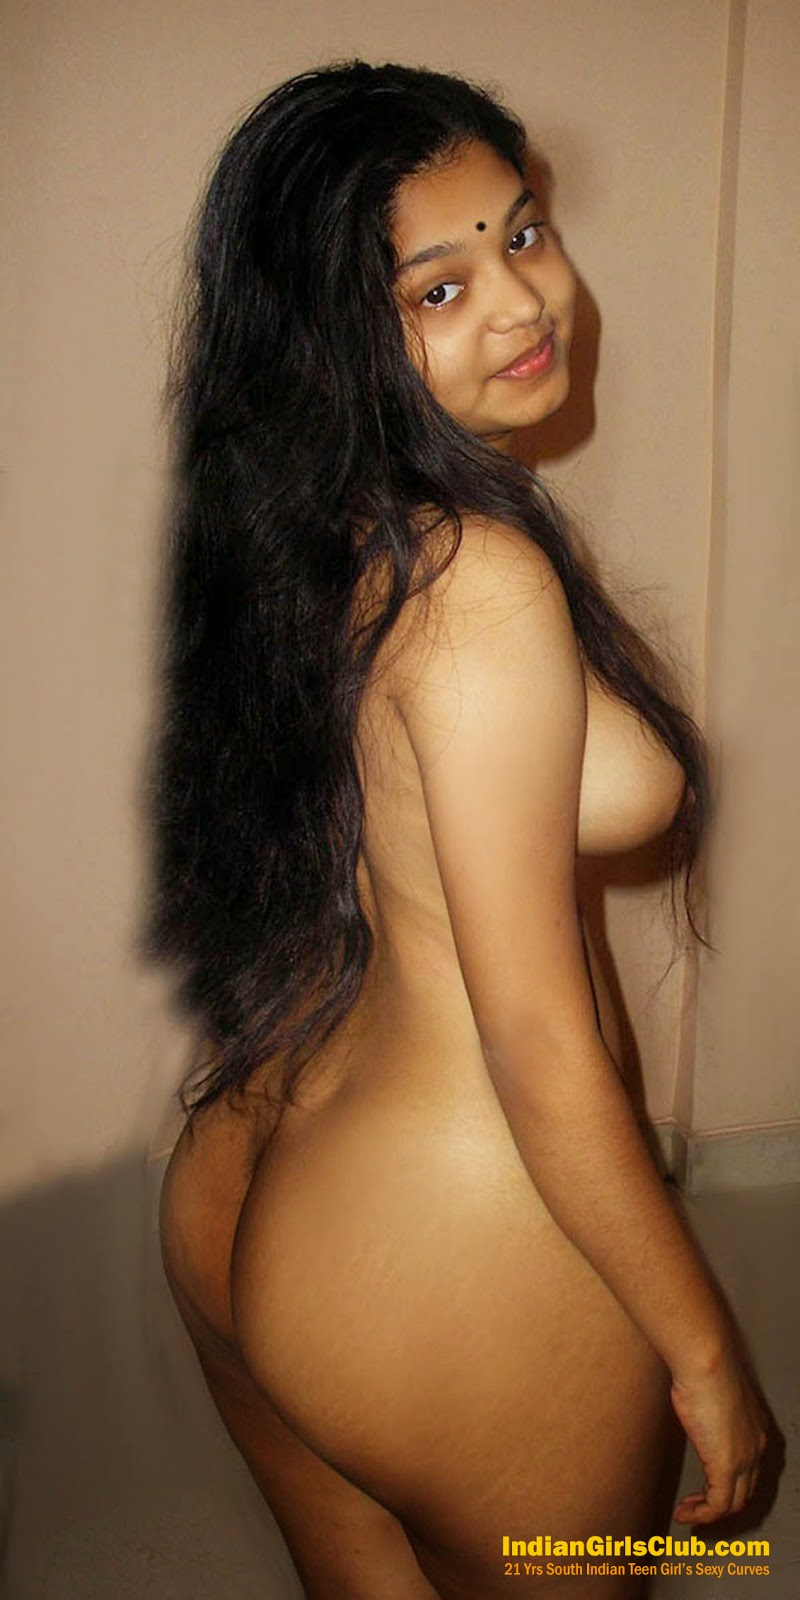 Fucking indian girl on redtube